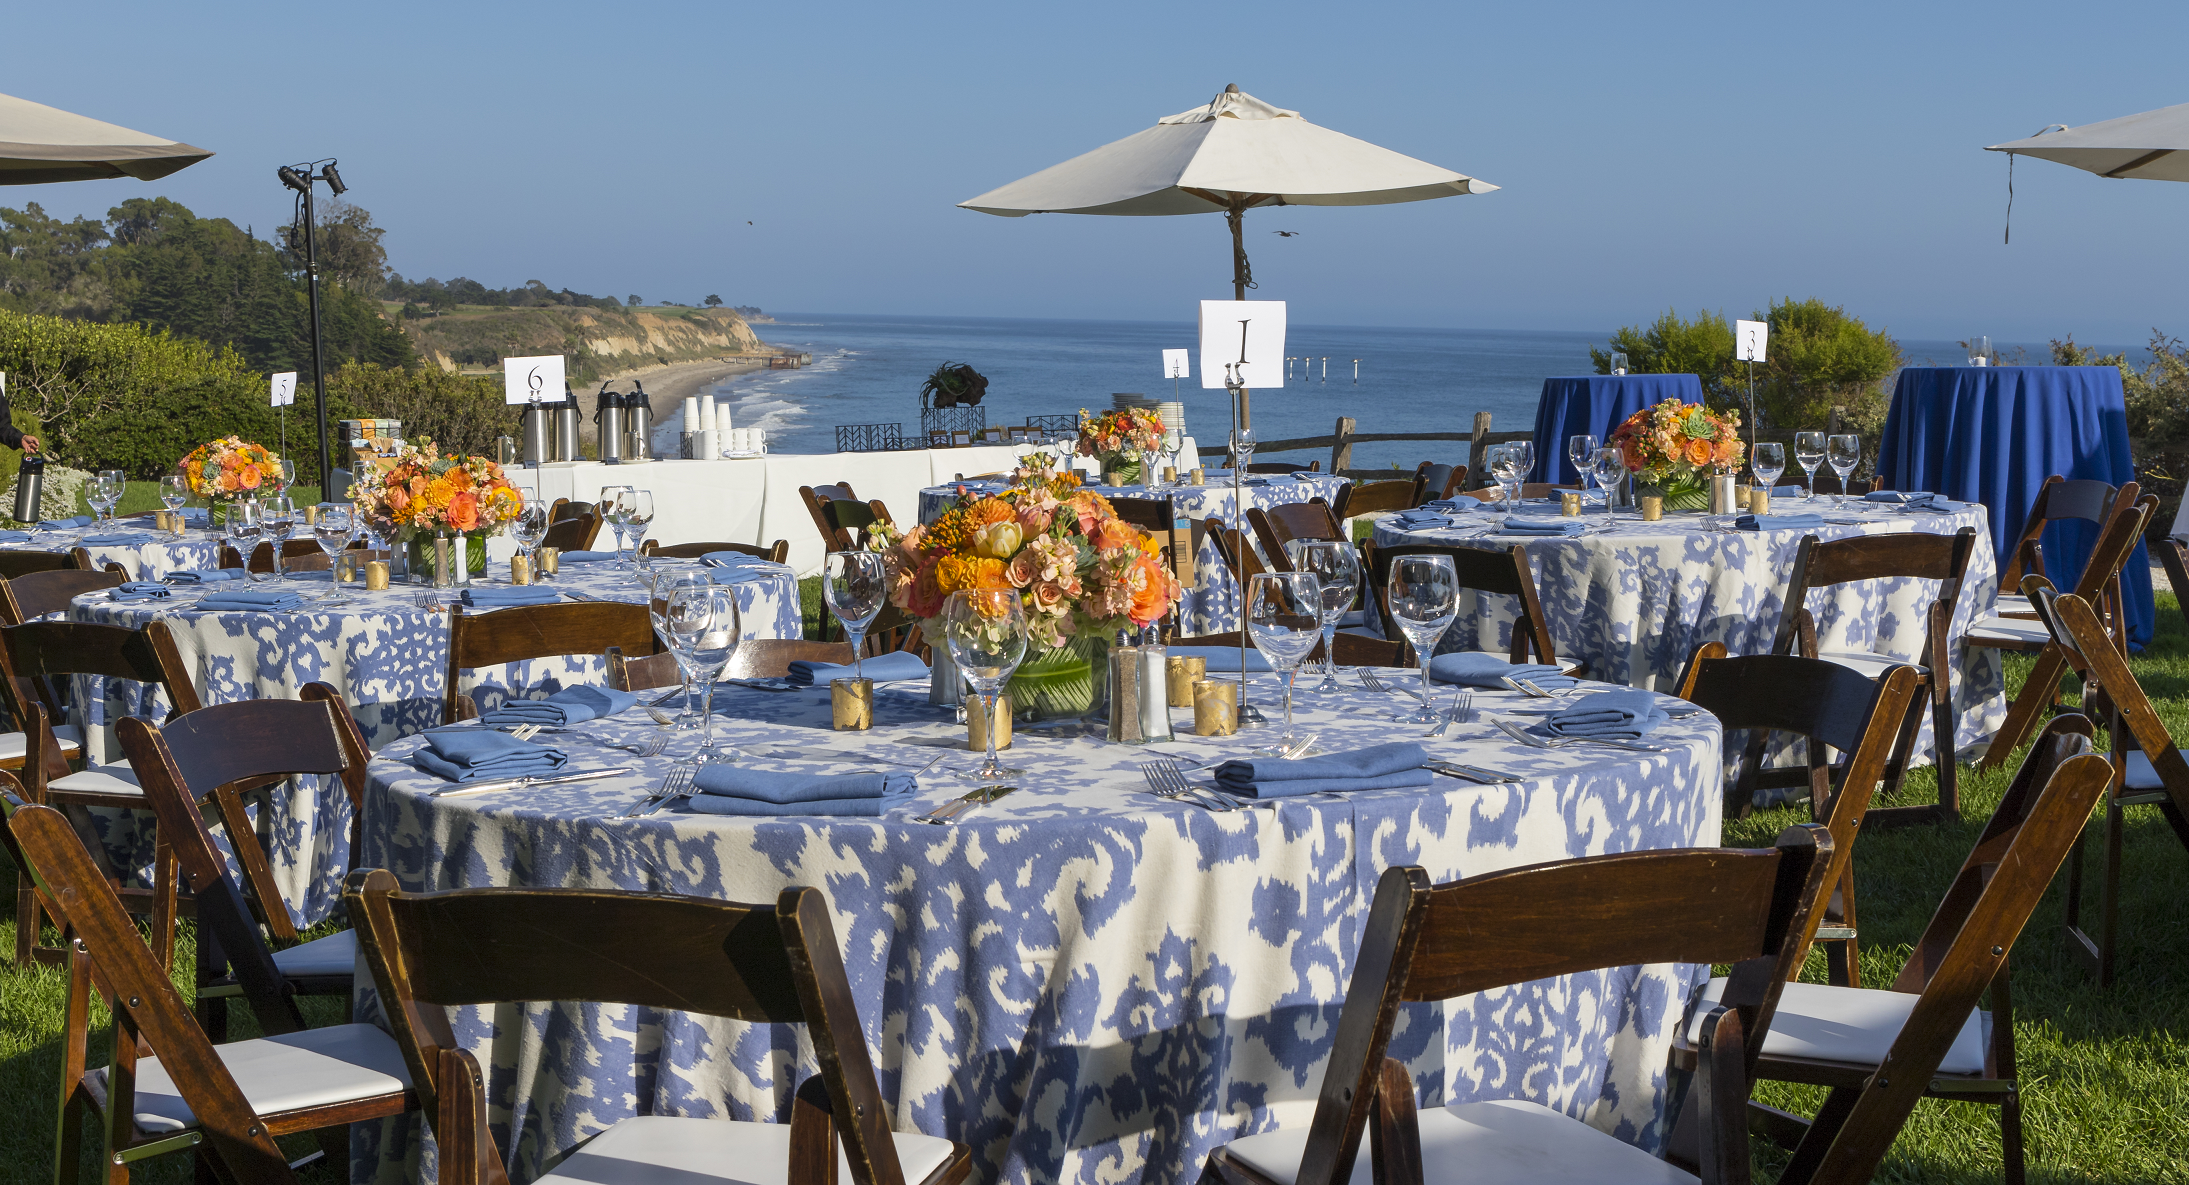 Coastal View event with blue casablanca linen and bright orange centerpieces